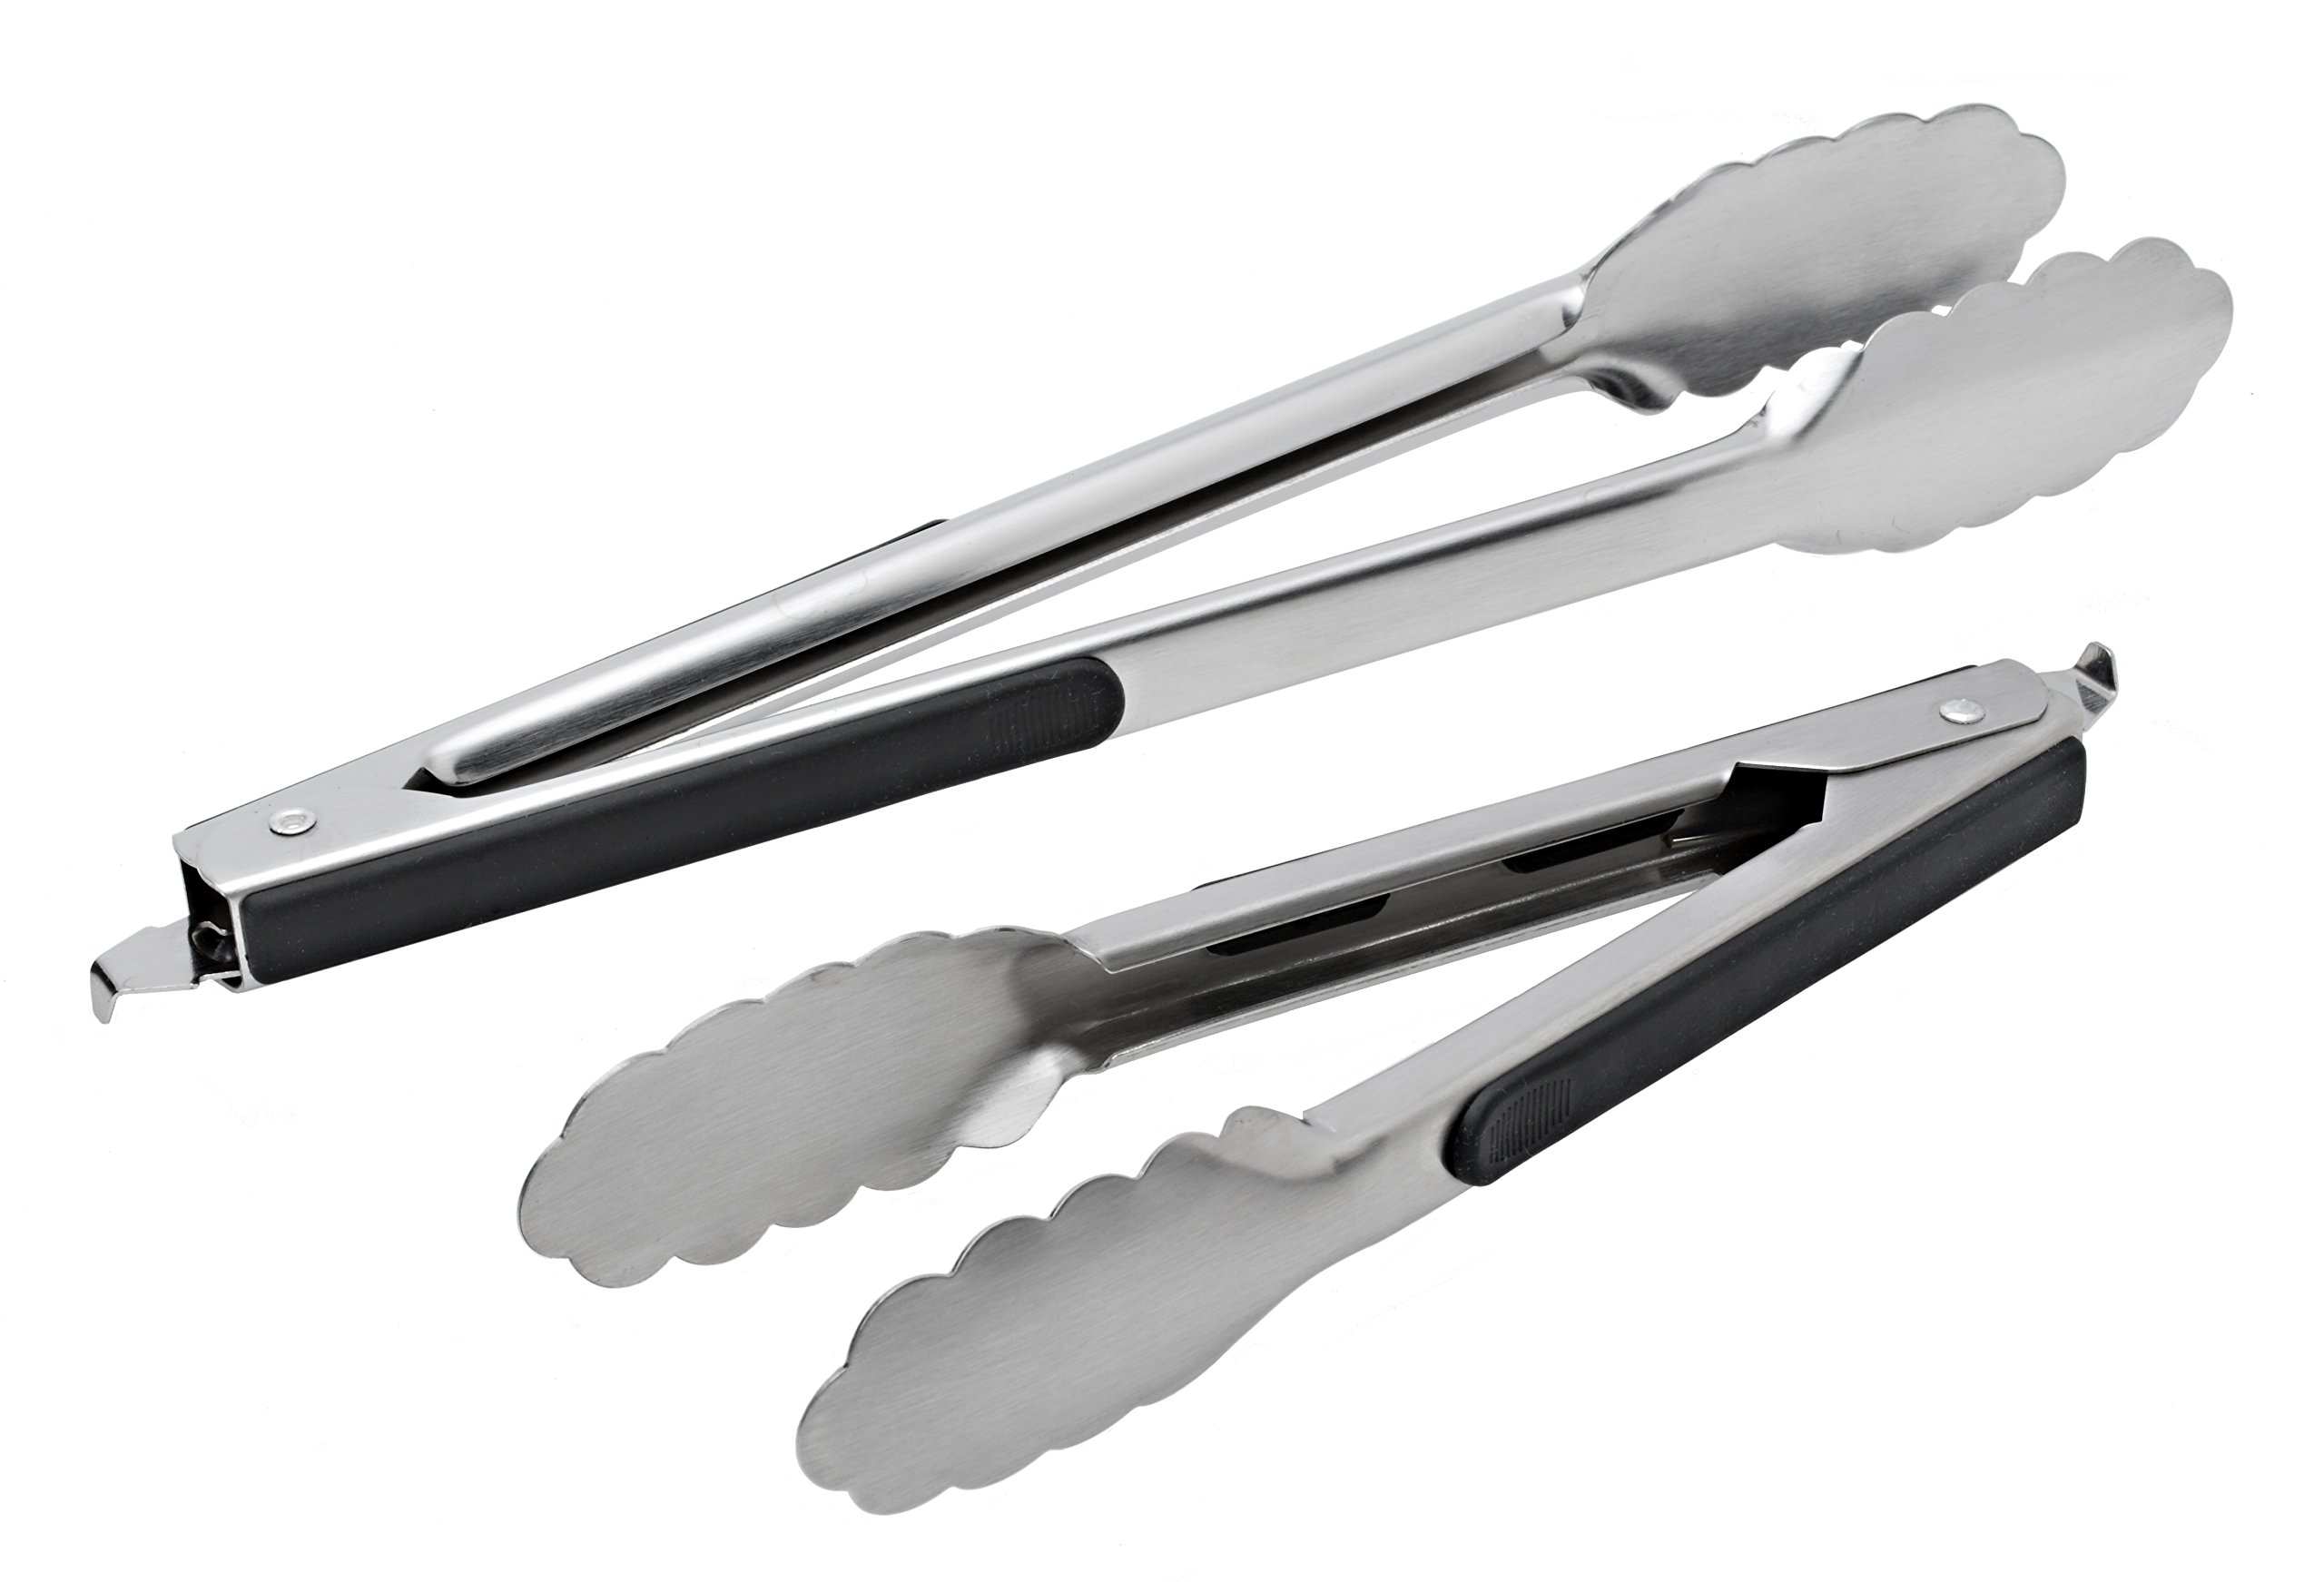 Stainless Steel Kitchen Tongs Set Of 2 (9 Inch & 12 Inch) Salad Serving & Gri.. 2